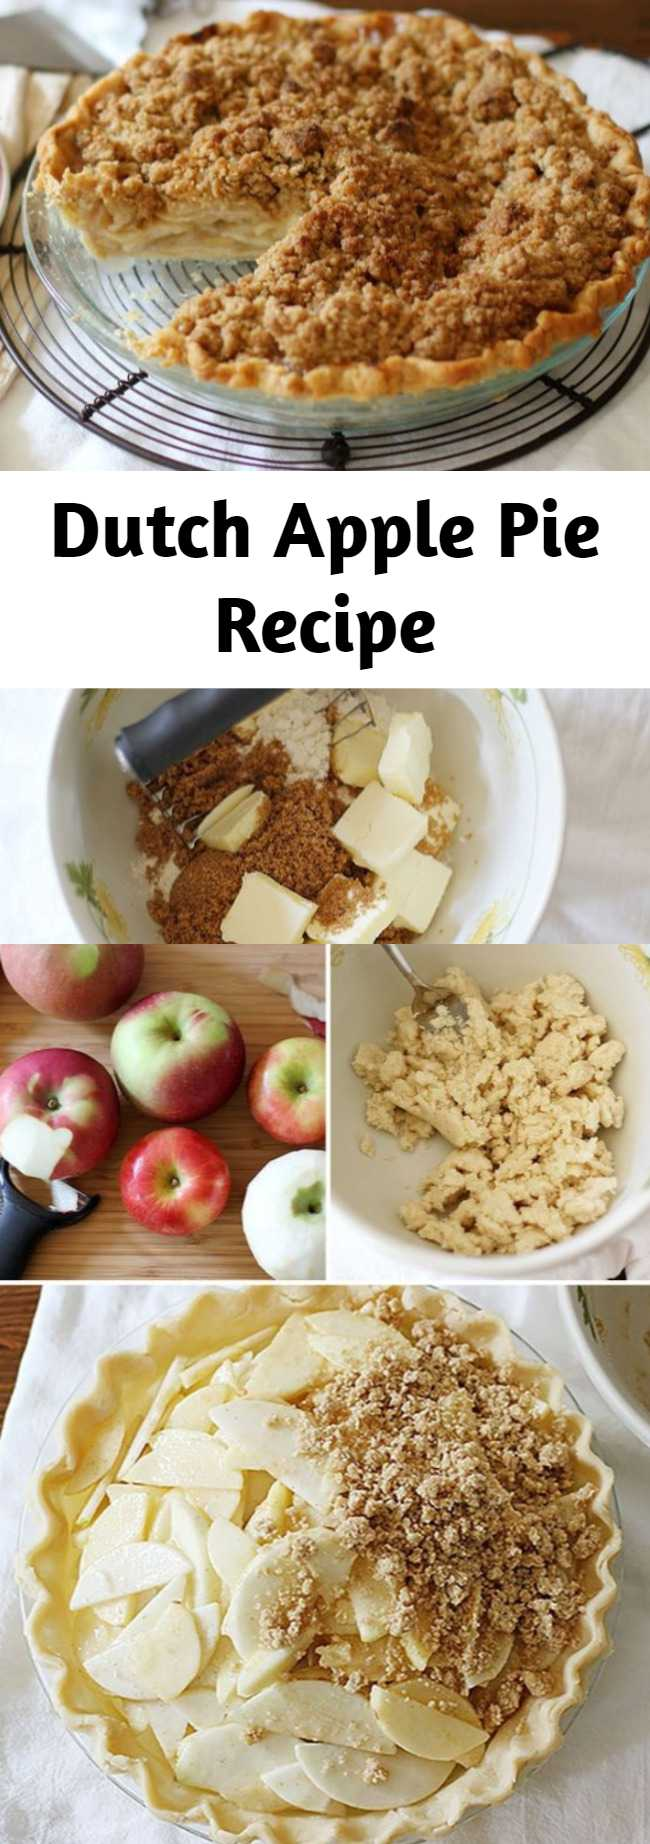 The difference between classic apple pie and Dutch apple pie is all in the delicious crumb topping. Instead of a pie-crust, Dutch apple pie features a generous blanket of sweet streusel crumbs made with a simple mixture of sugar, butter and flour–sprinkled over a tender spiced apple filling and what you get is a humble apple pie elevated to a new level of delicious. Planning ahead for Thanksgiving? This pie will keep frozen, wrapped in plastic wrap and then again in foil, for up to 3 months.